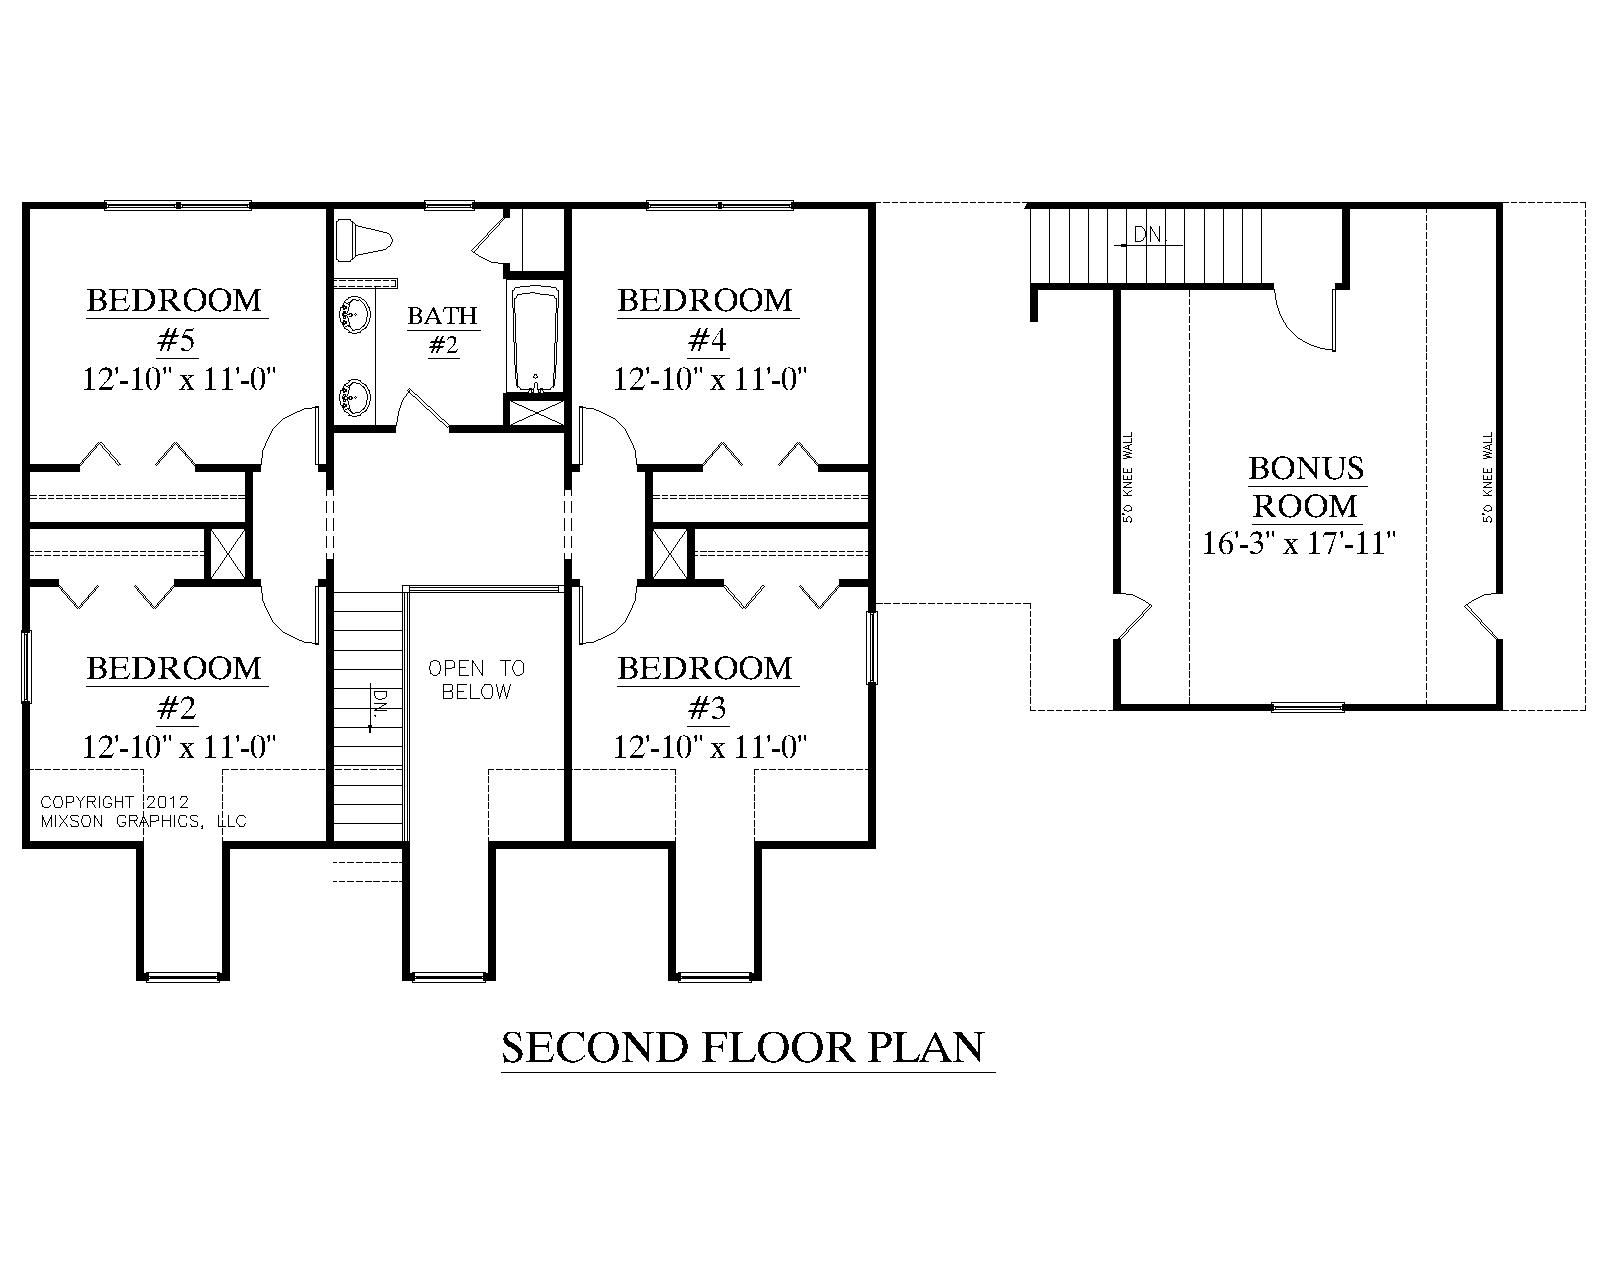 House plan 2341 a montgomery a second floor plan for 2nd floor house plan